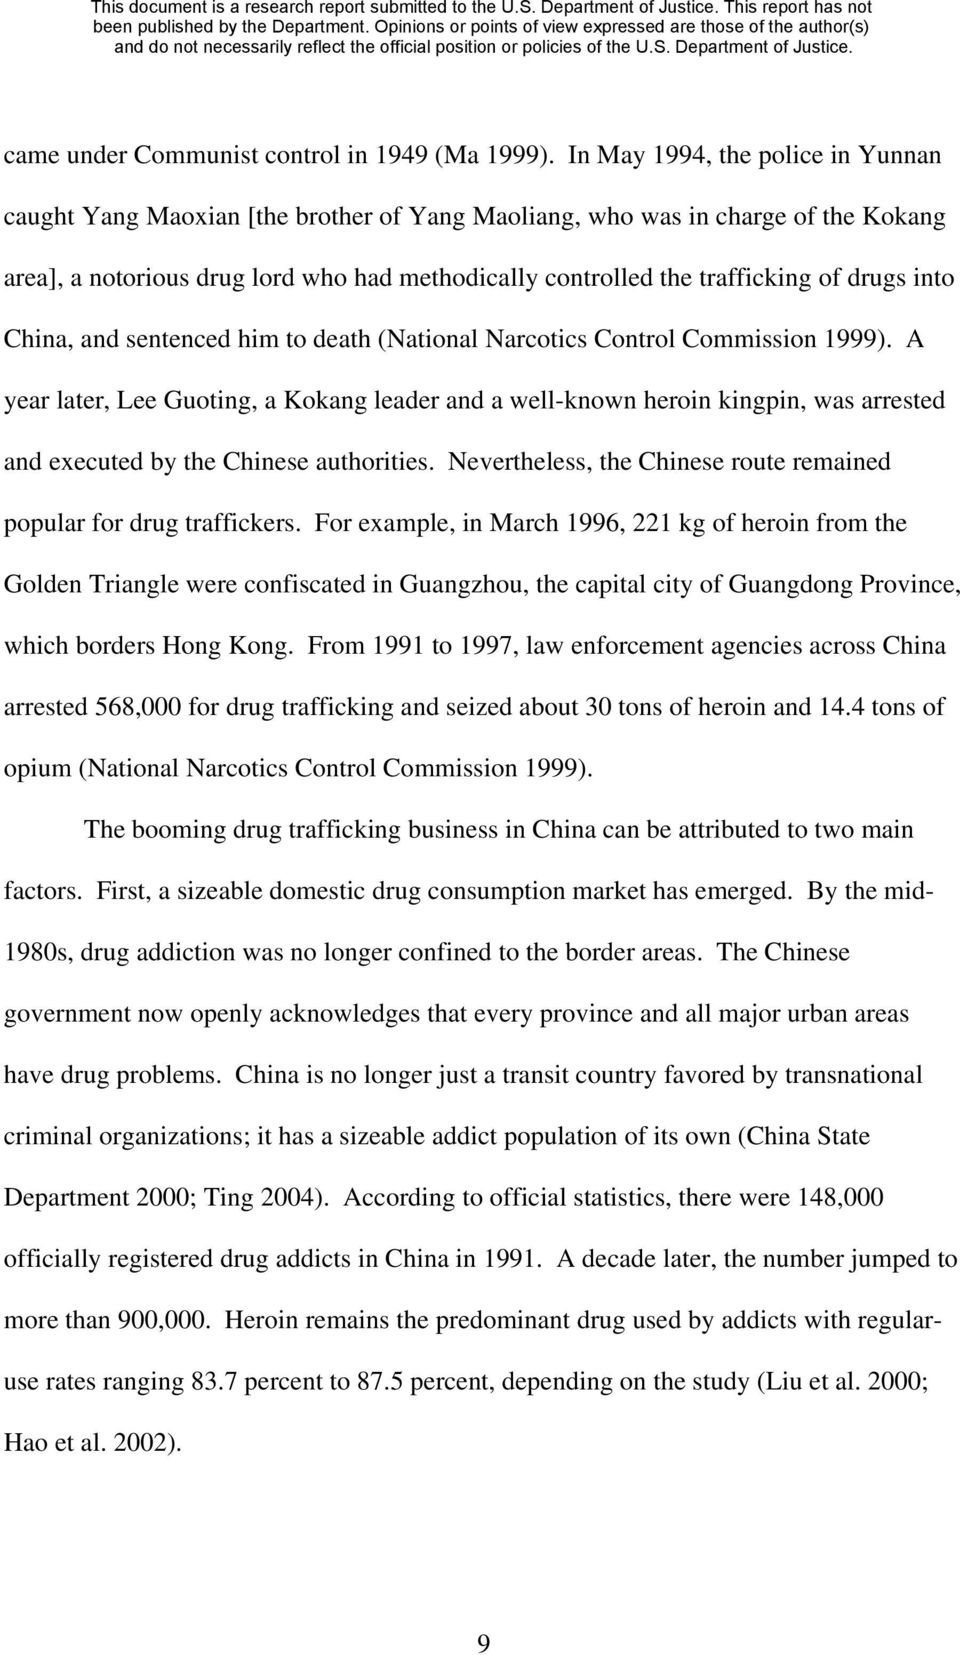 drugs into China, and sentenced him to death (National Narcotics Control Commission 1999).